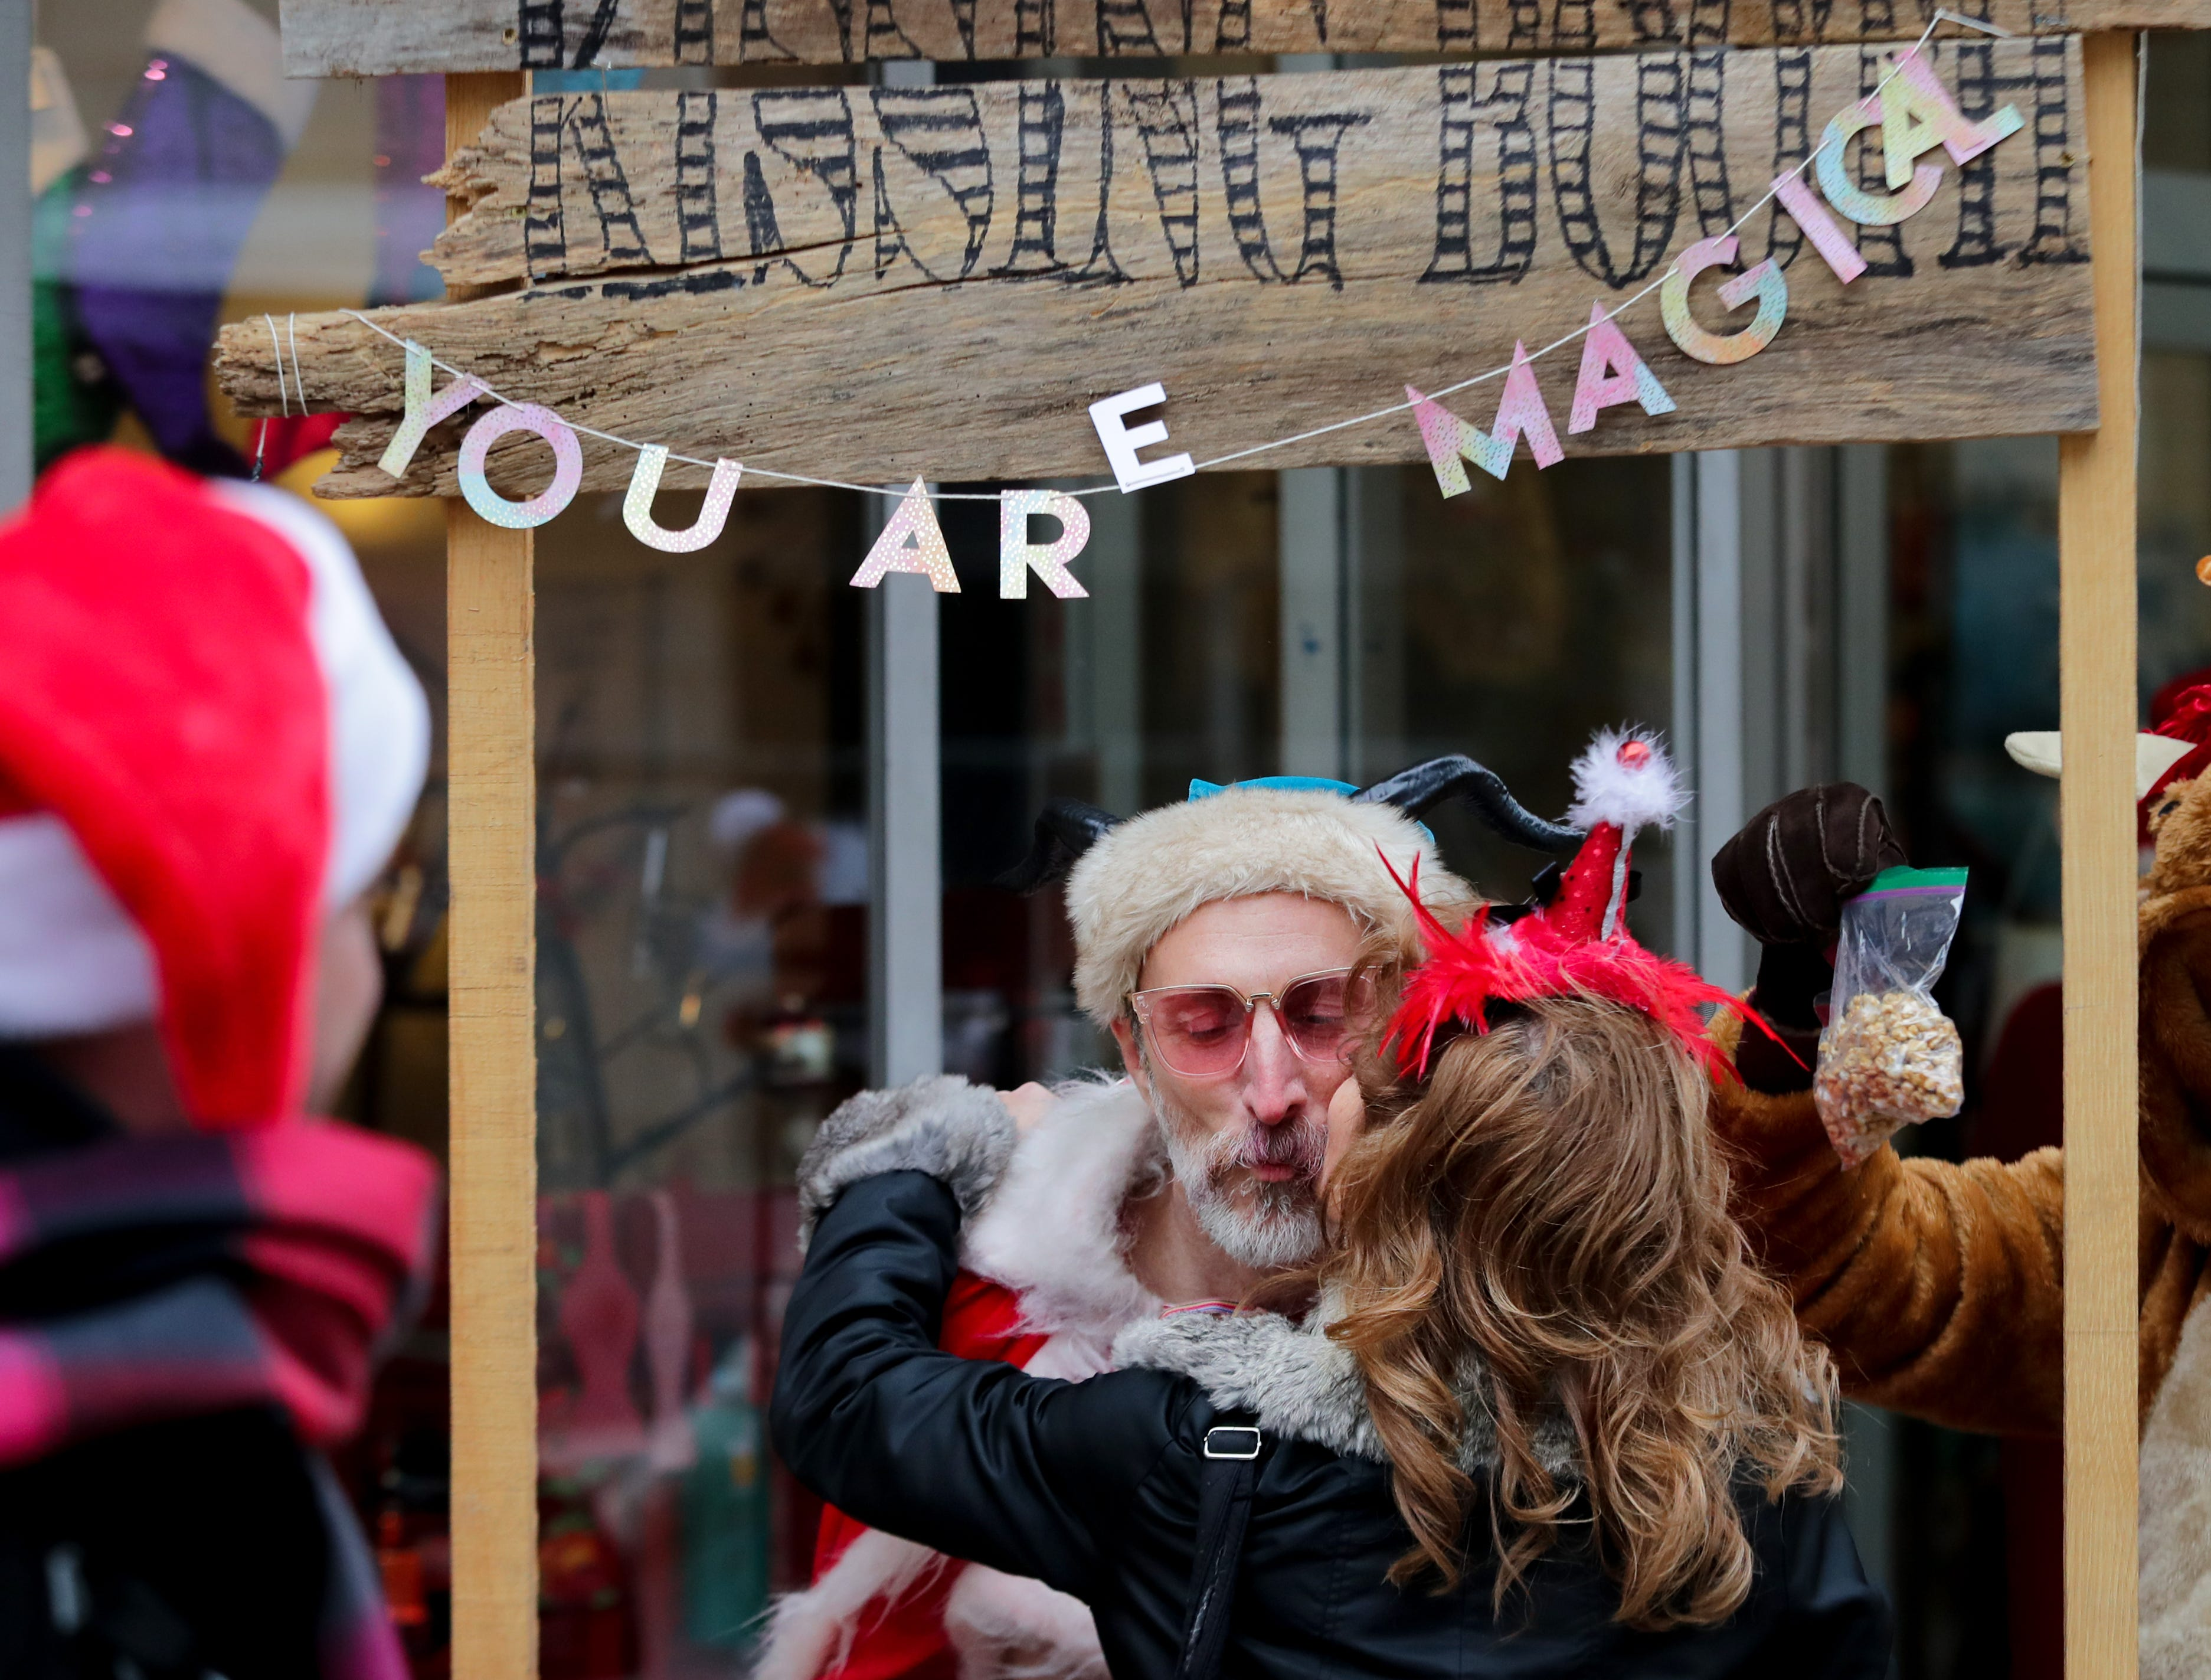 J.D. Dotson, one of Santa's workers, occupies the Kissing Booth at one of the SantaCon's stops.    Dec. 8, 2018